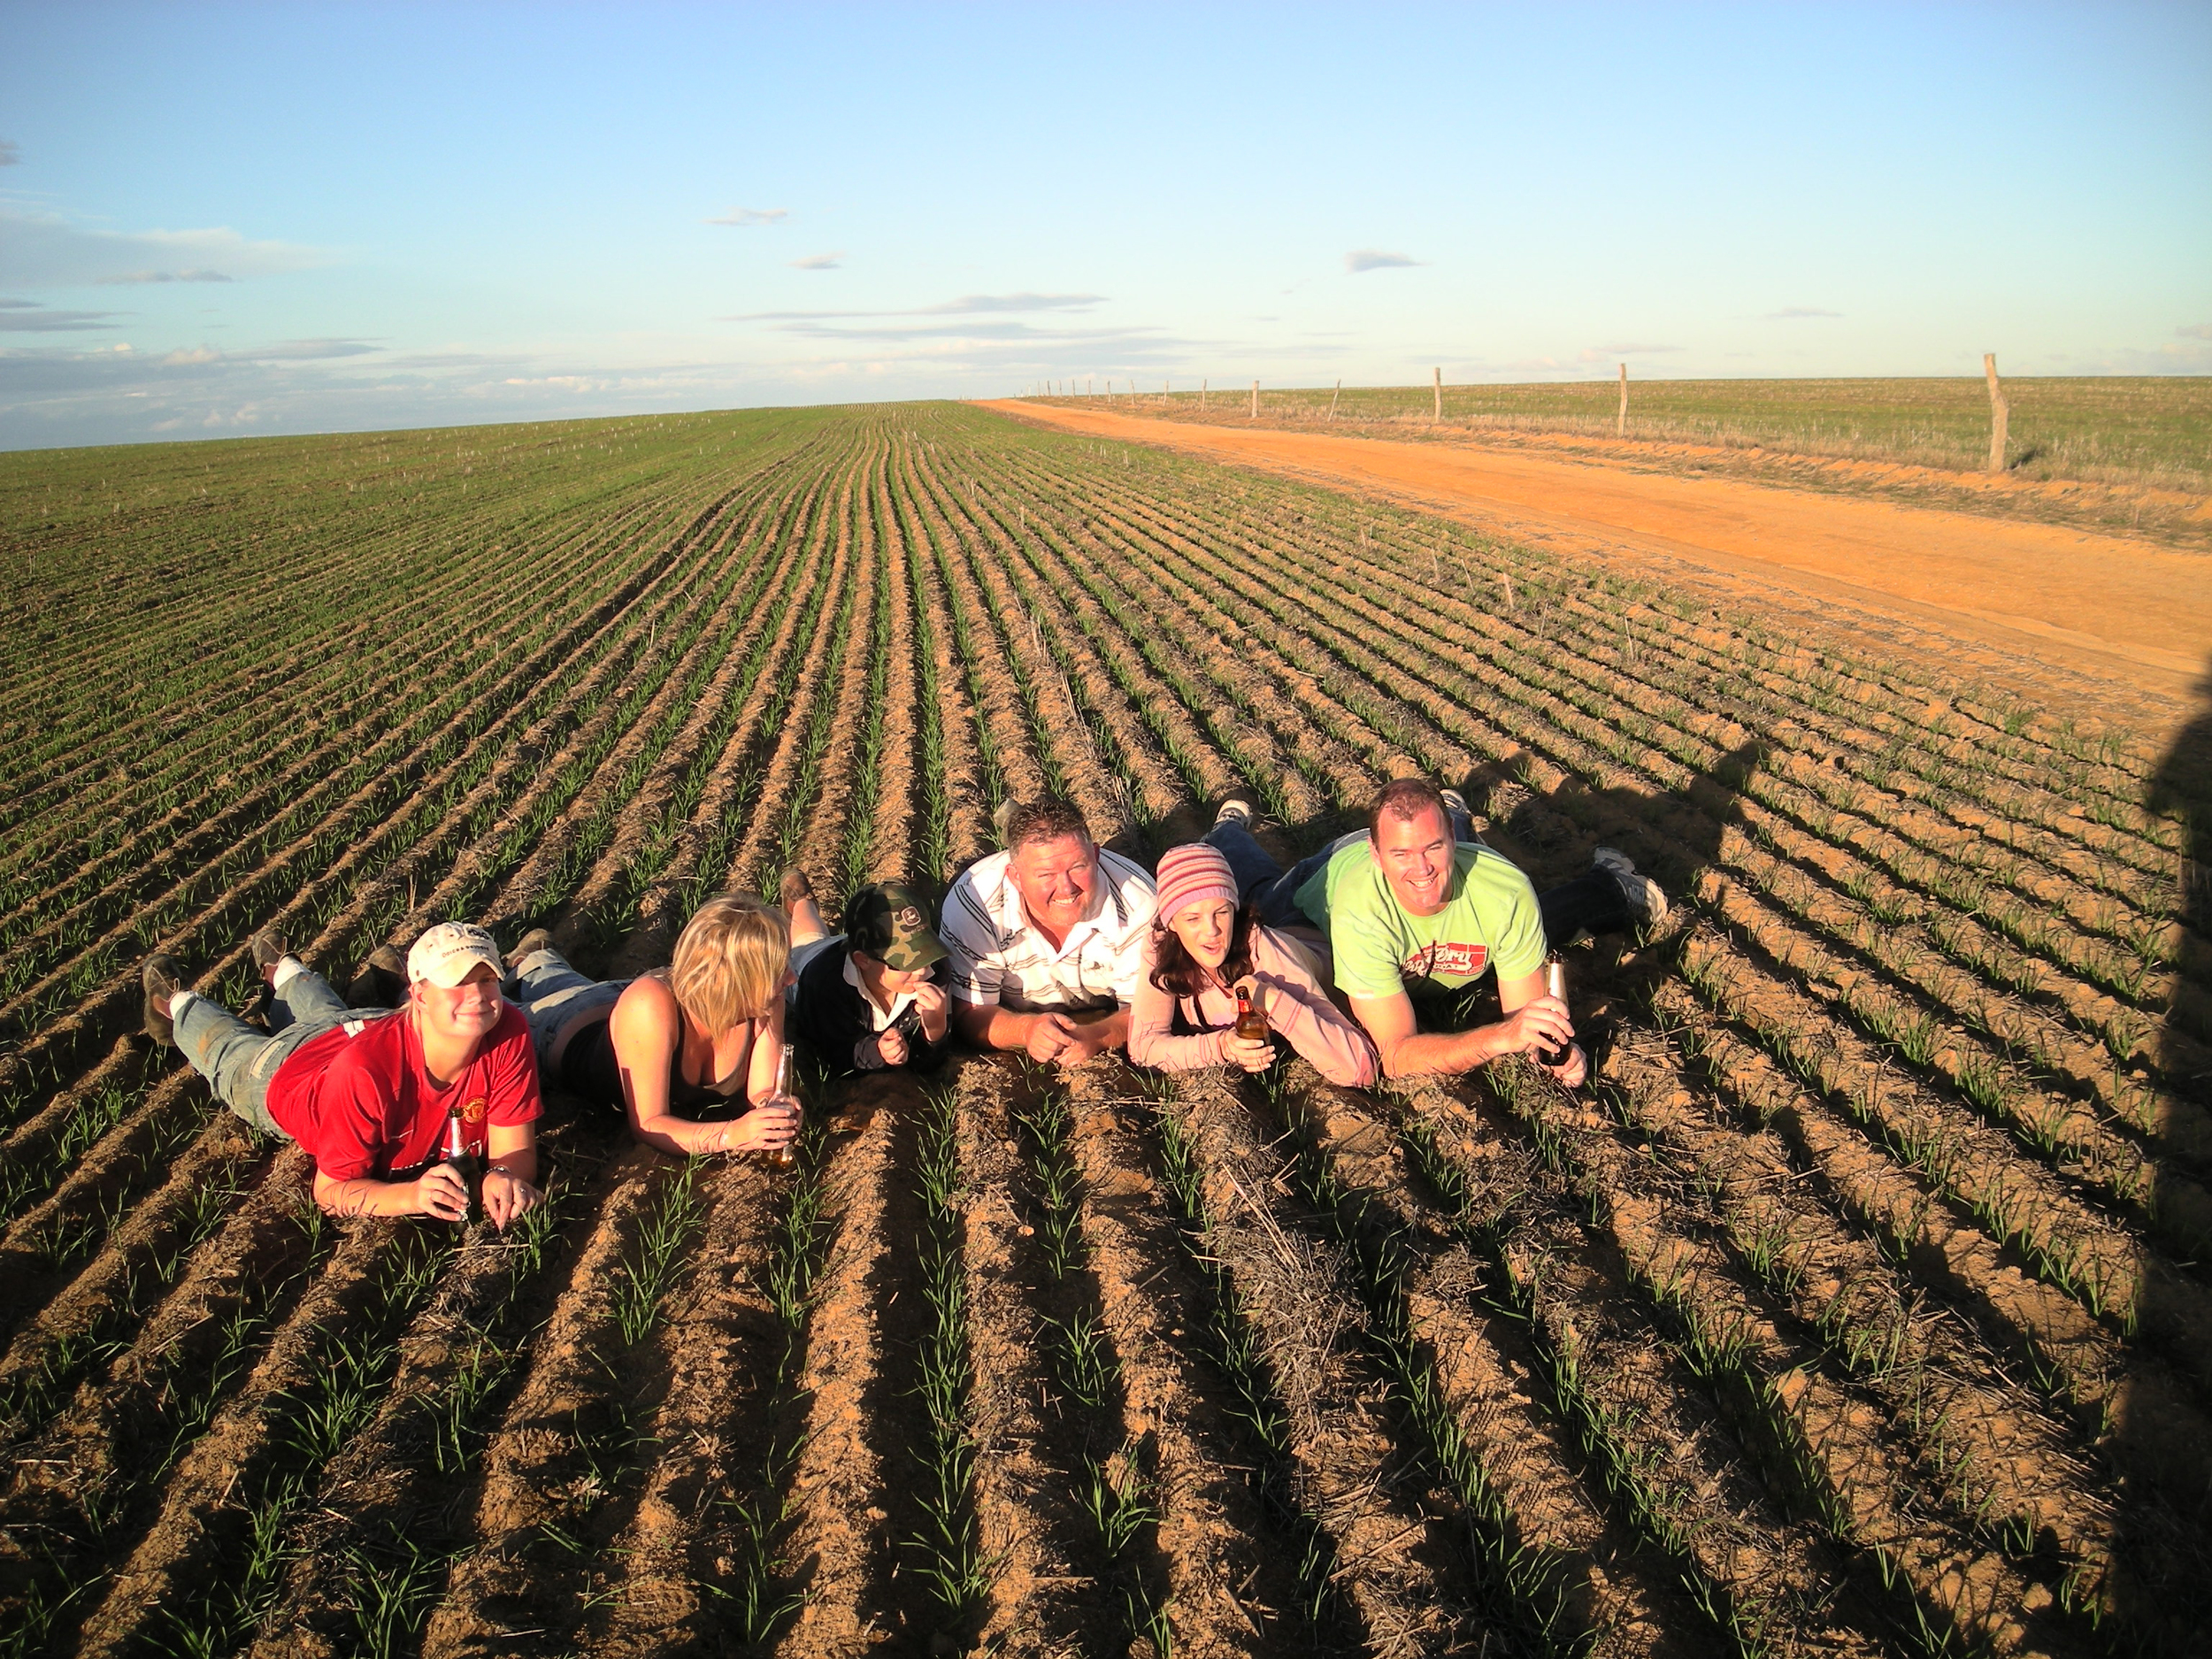 Working on a farm will get you out meeting real Australians AND get you your second year visa!